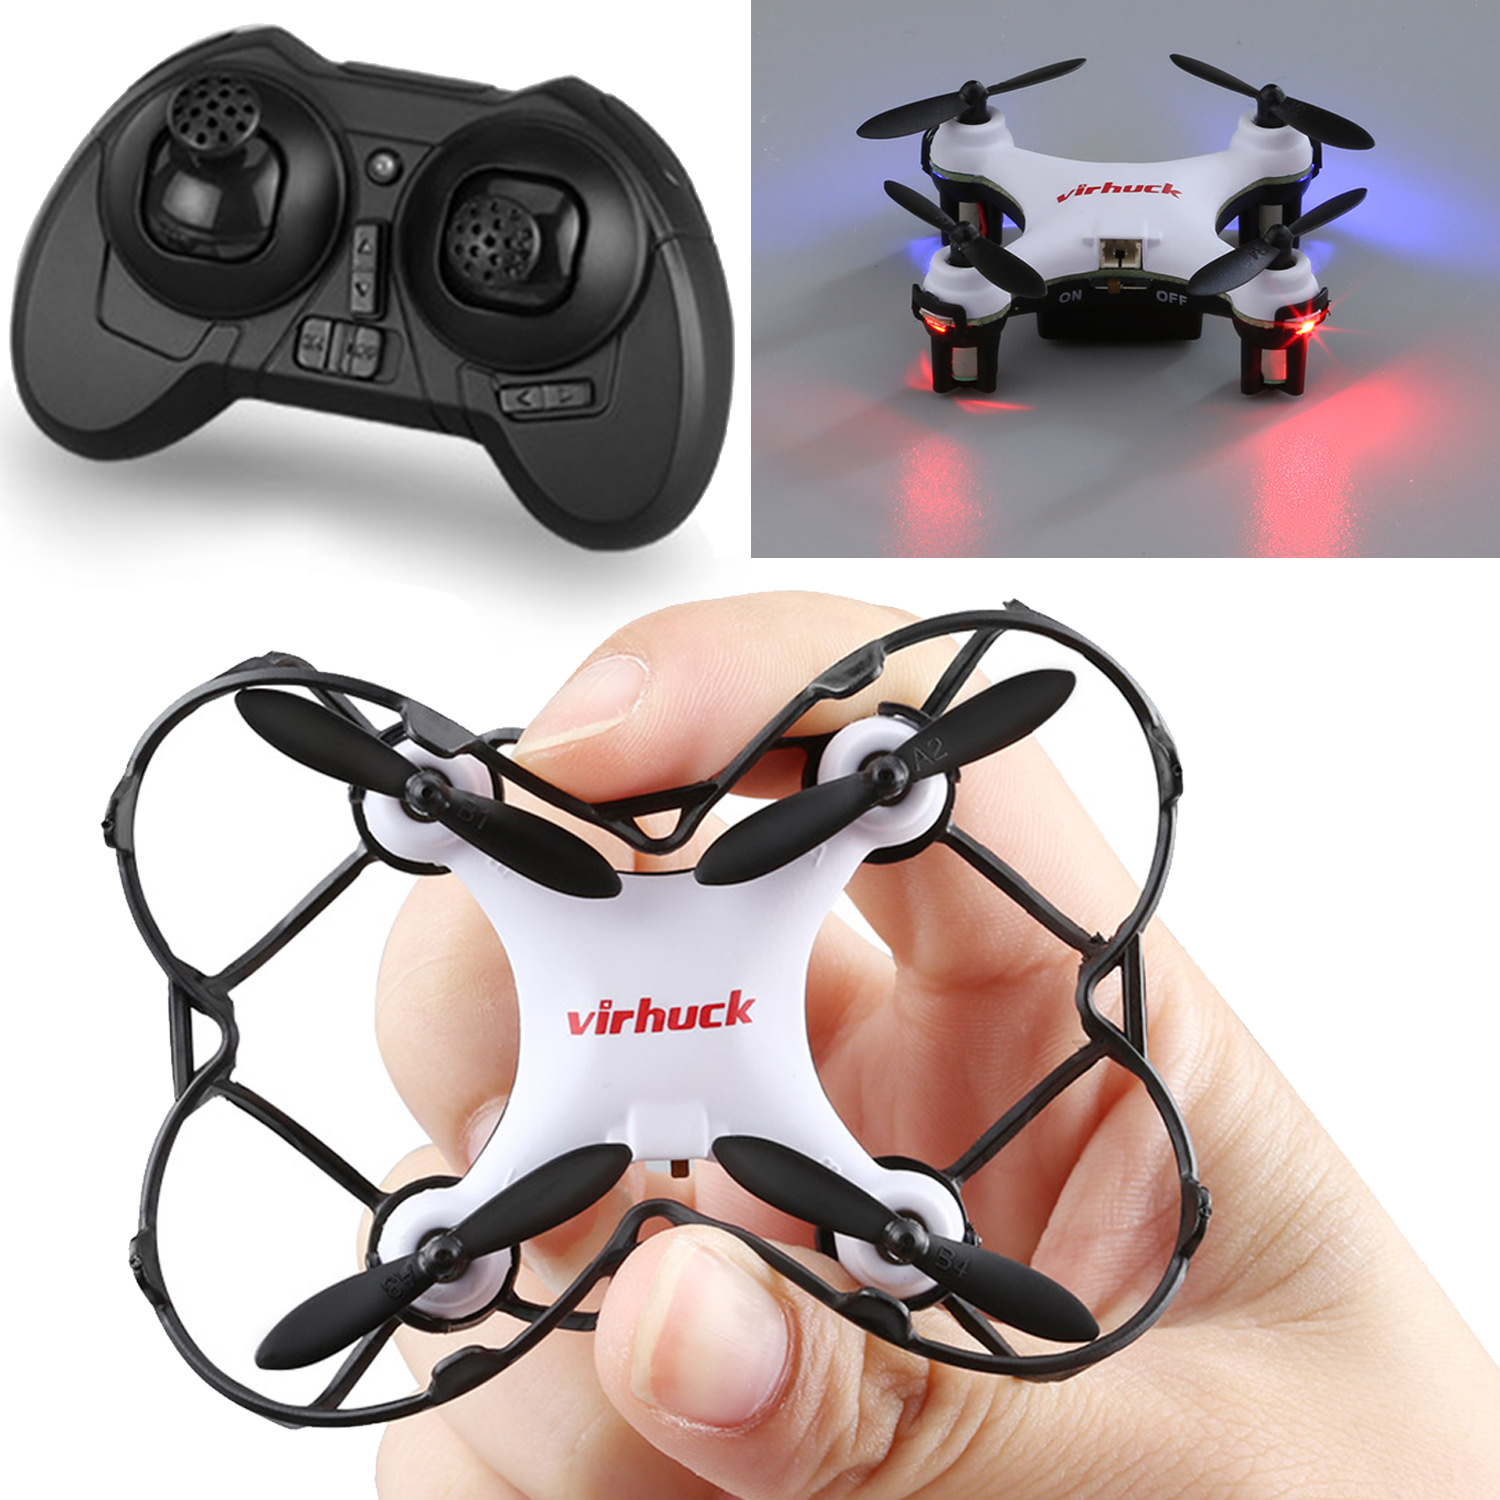 Virhuck GB202 Mini Pocket Quadcopter Remote Control 6 AXIS GYRO System Aircraft, White